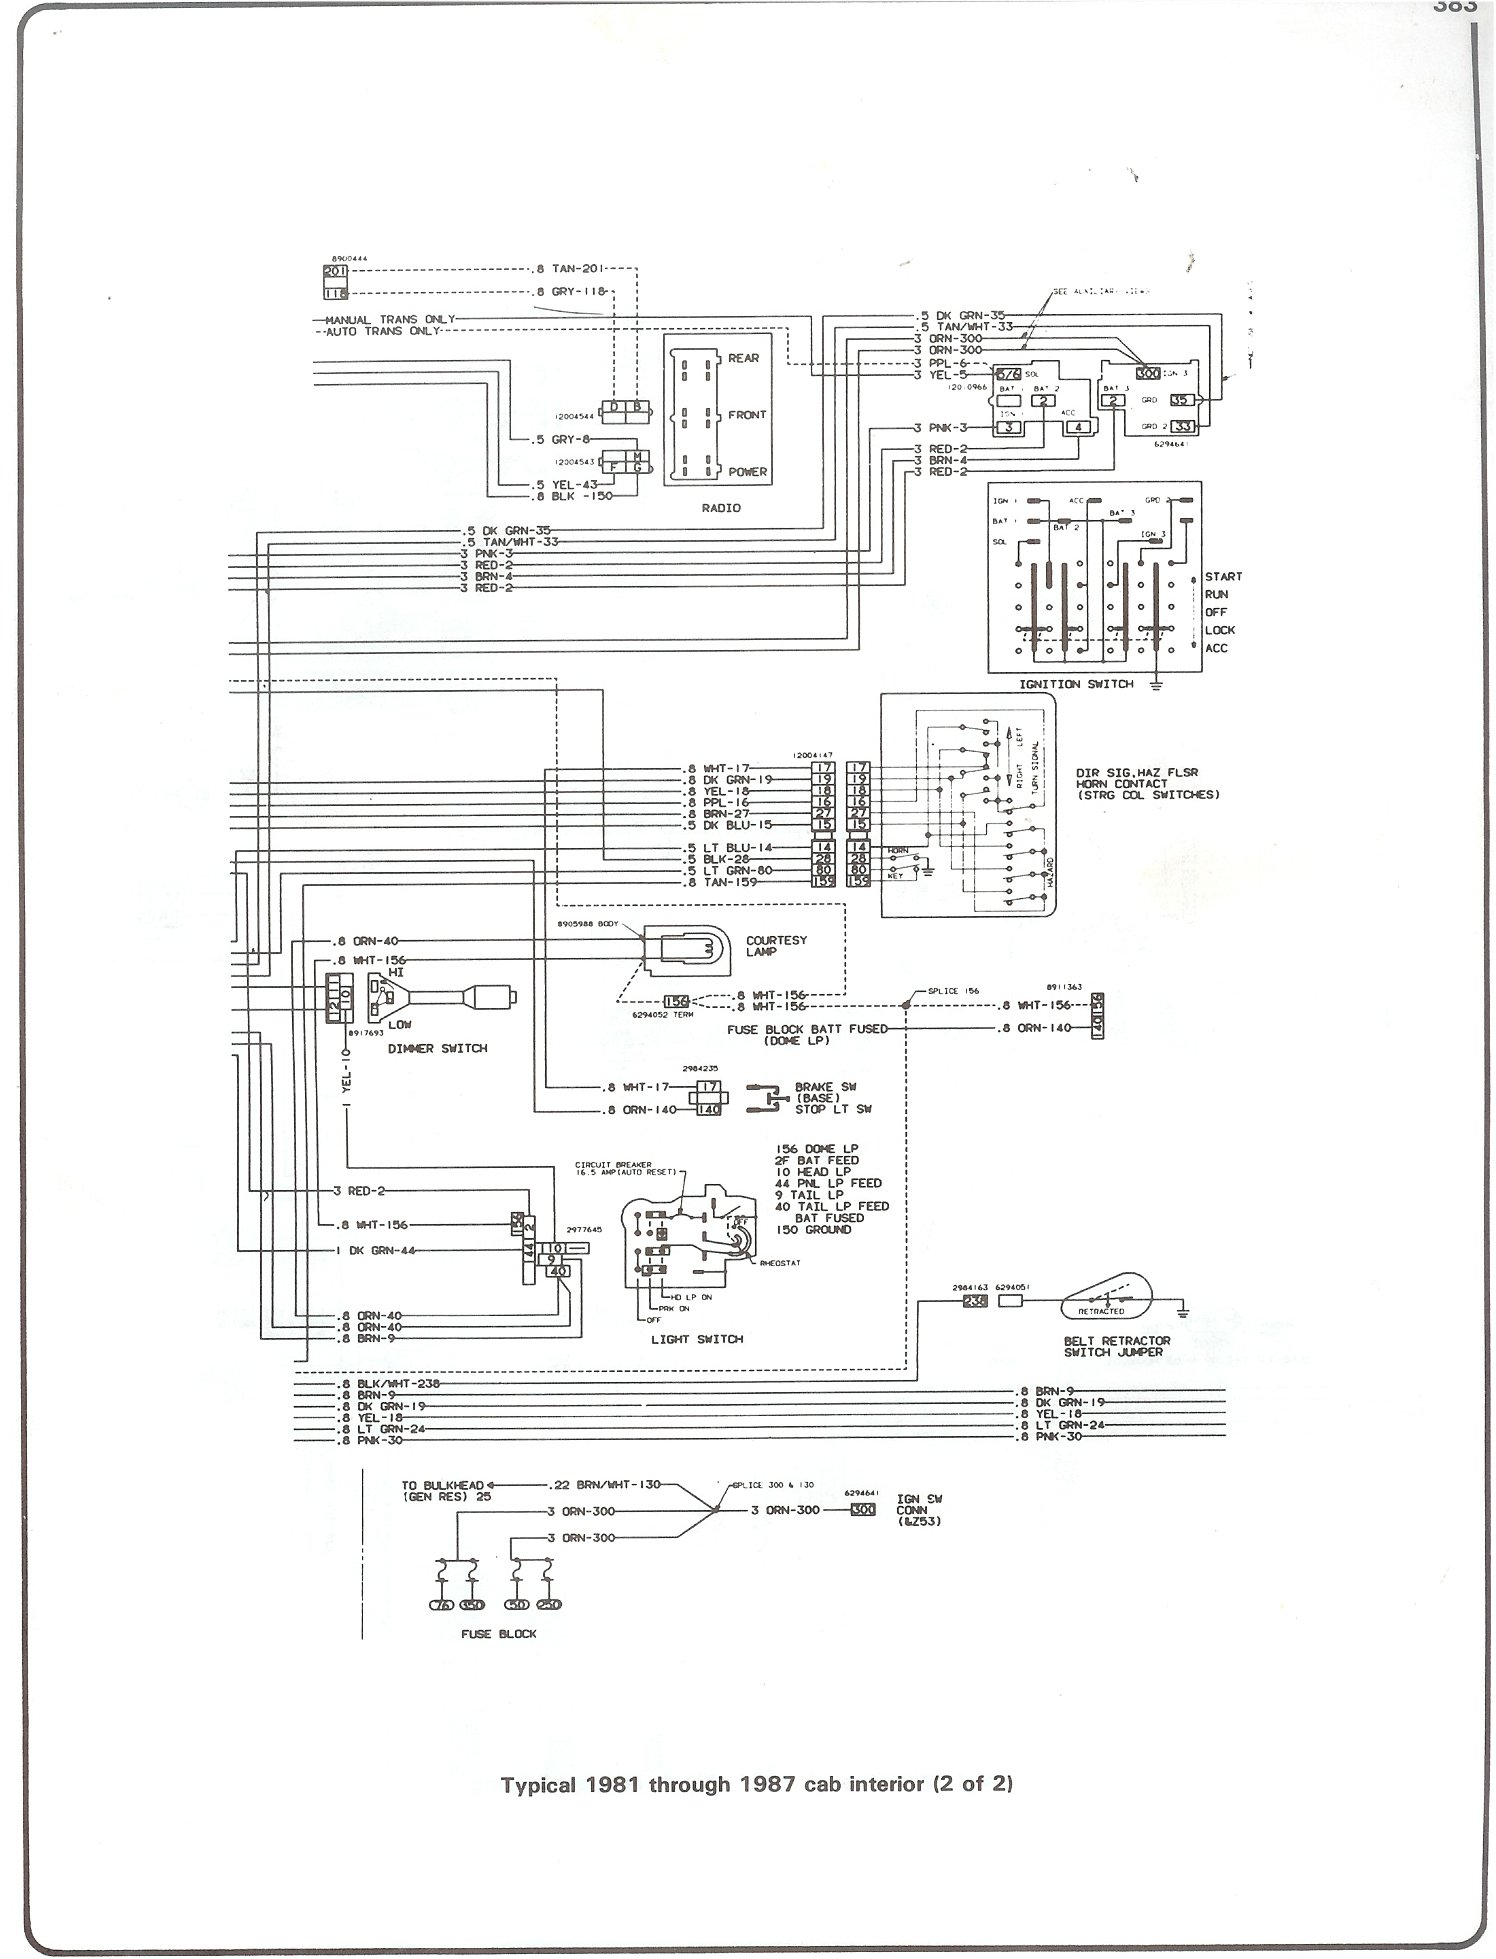 81 87_cab_inter_pg2 complete 73 87 wiring diagrams 1965 chevy c10 starter wiring diagram at webbmarketing.co